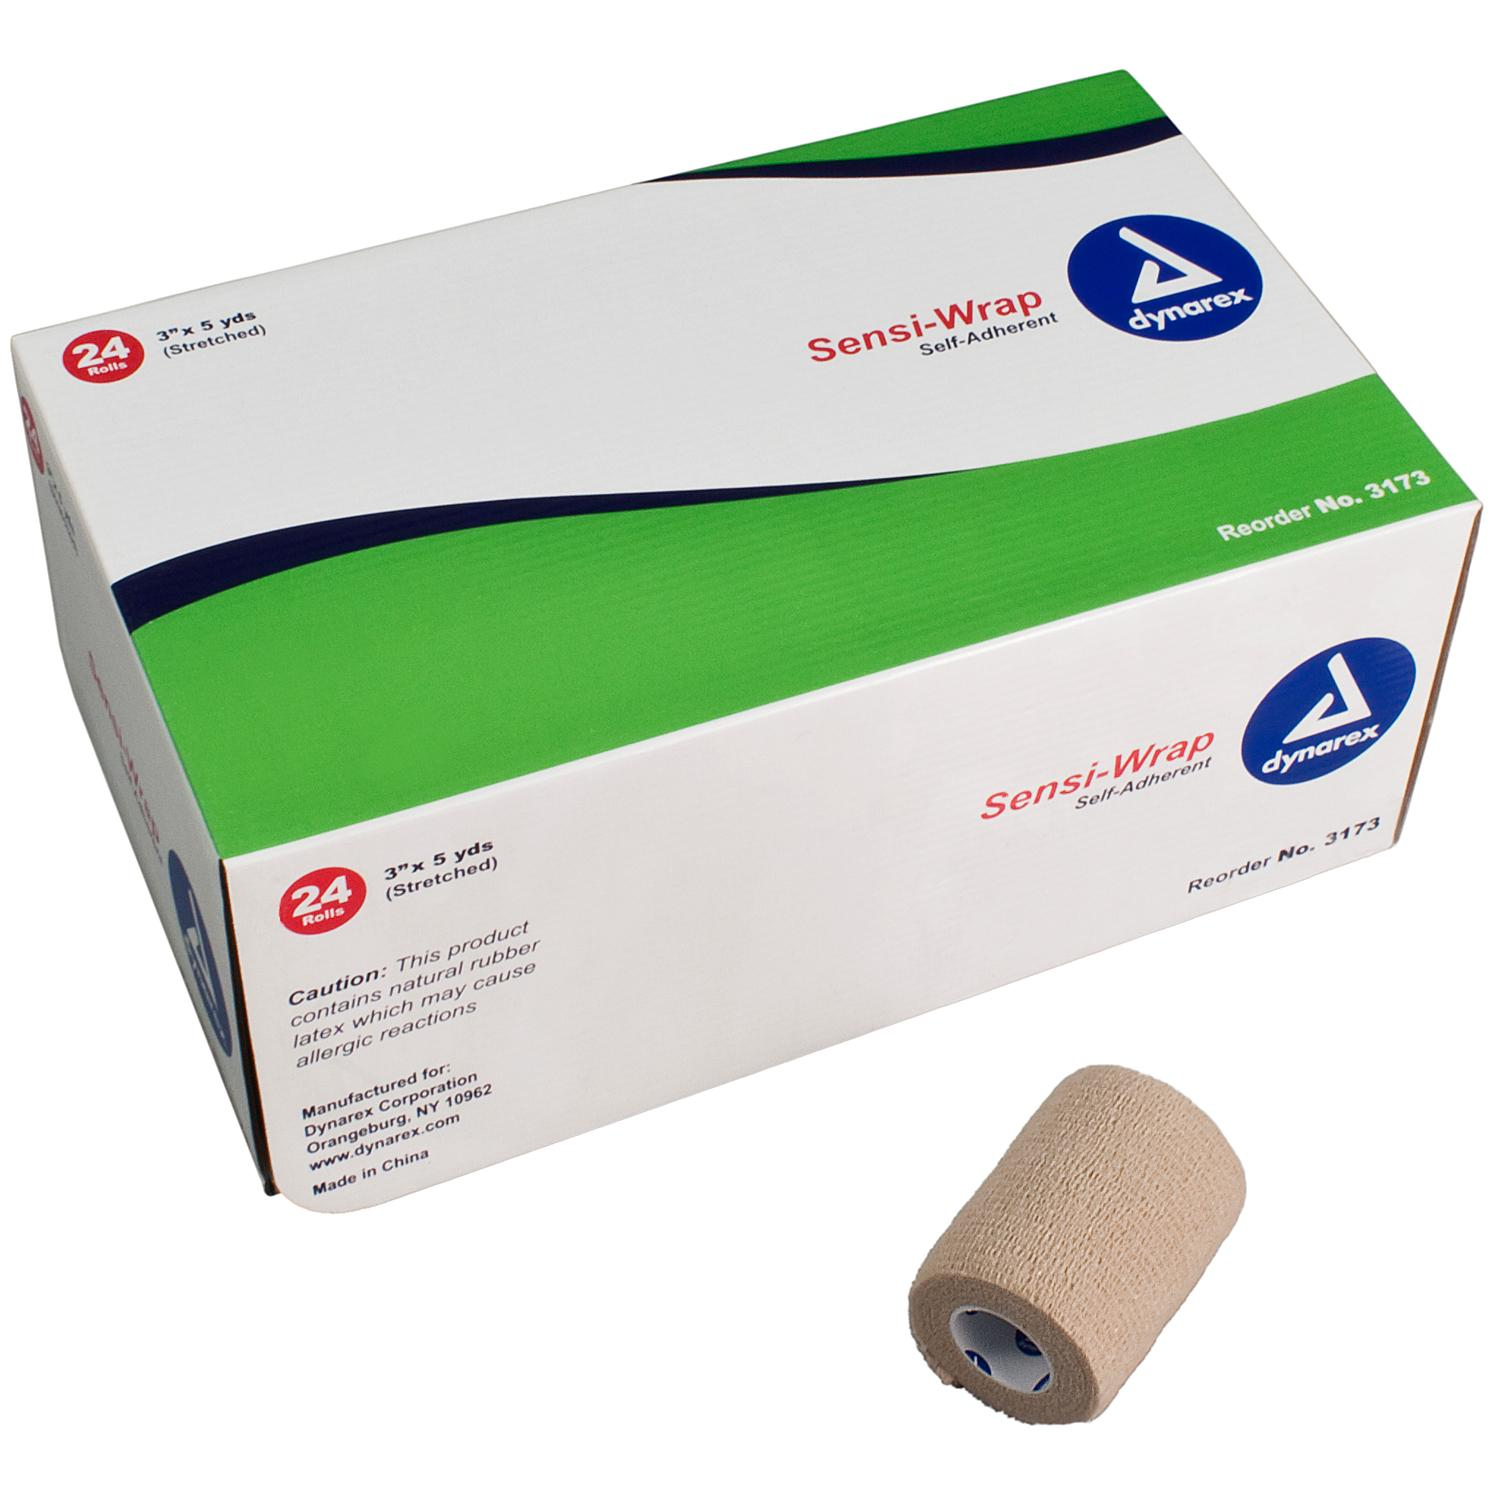 3 Inch Sensi-Wrap: Single Roll (Tan) image